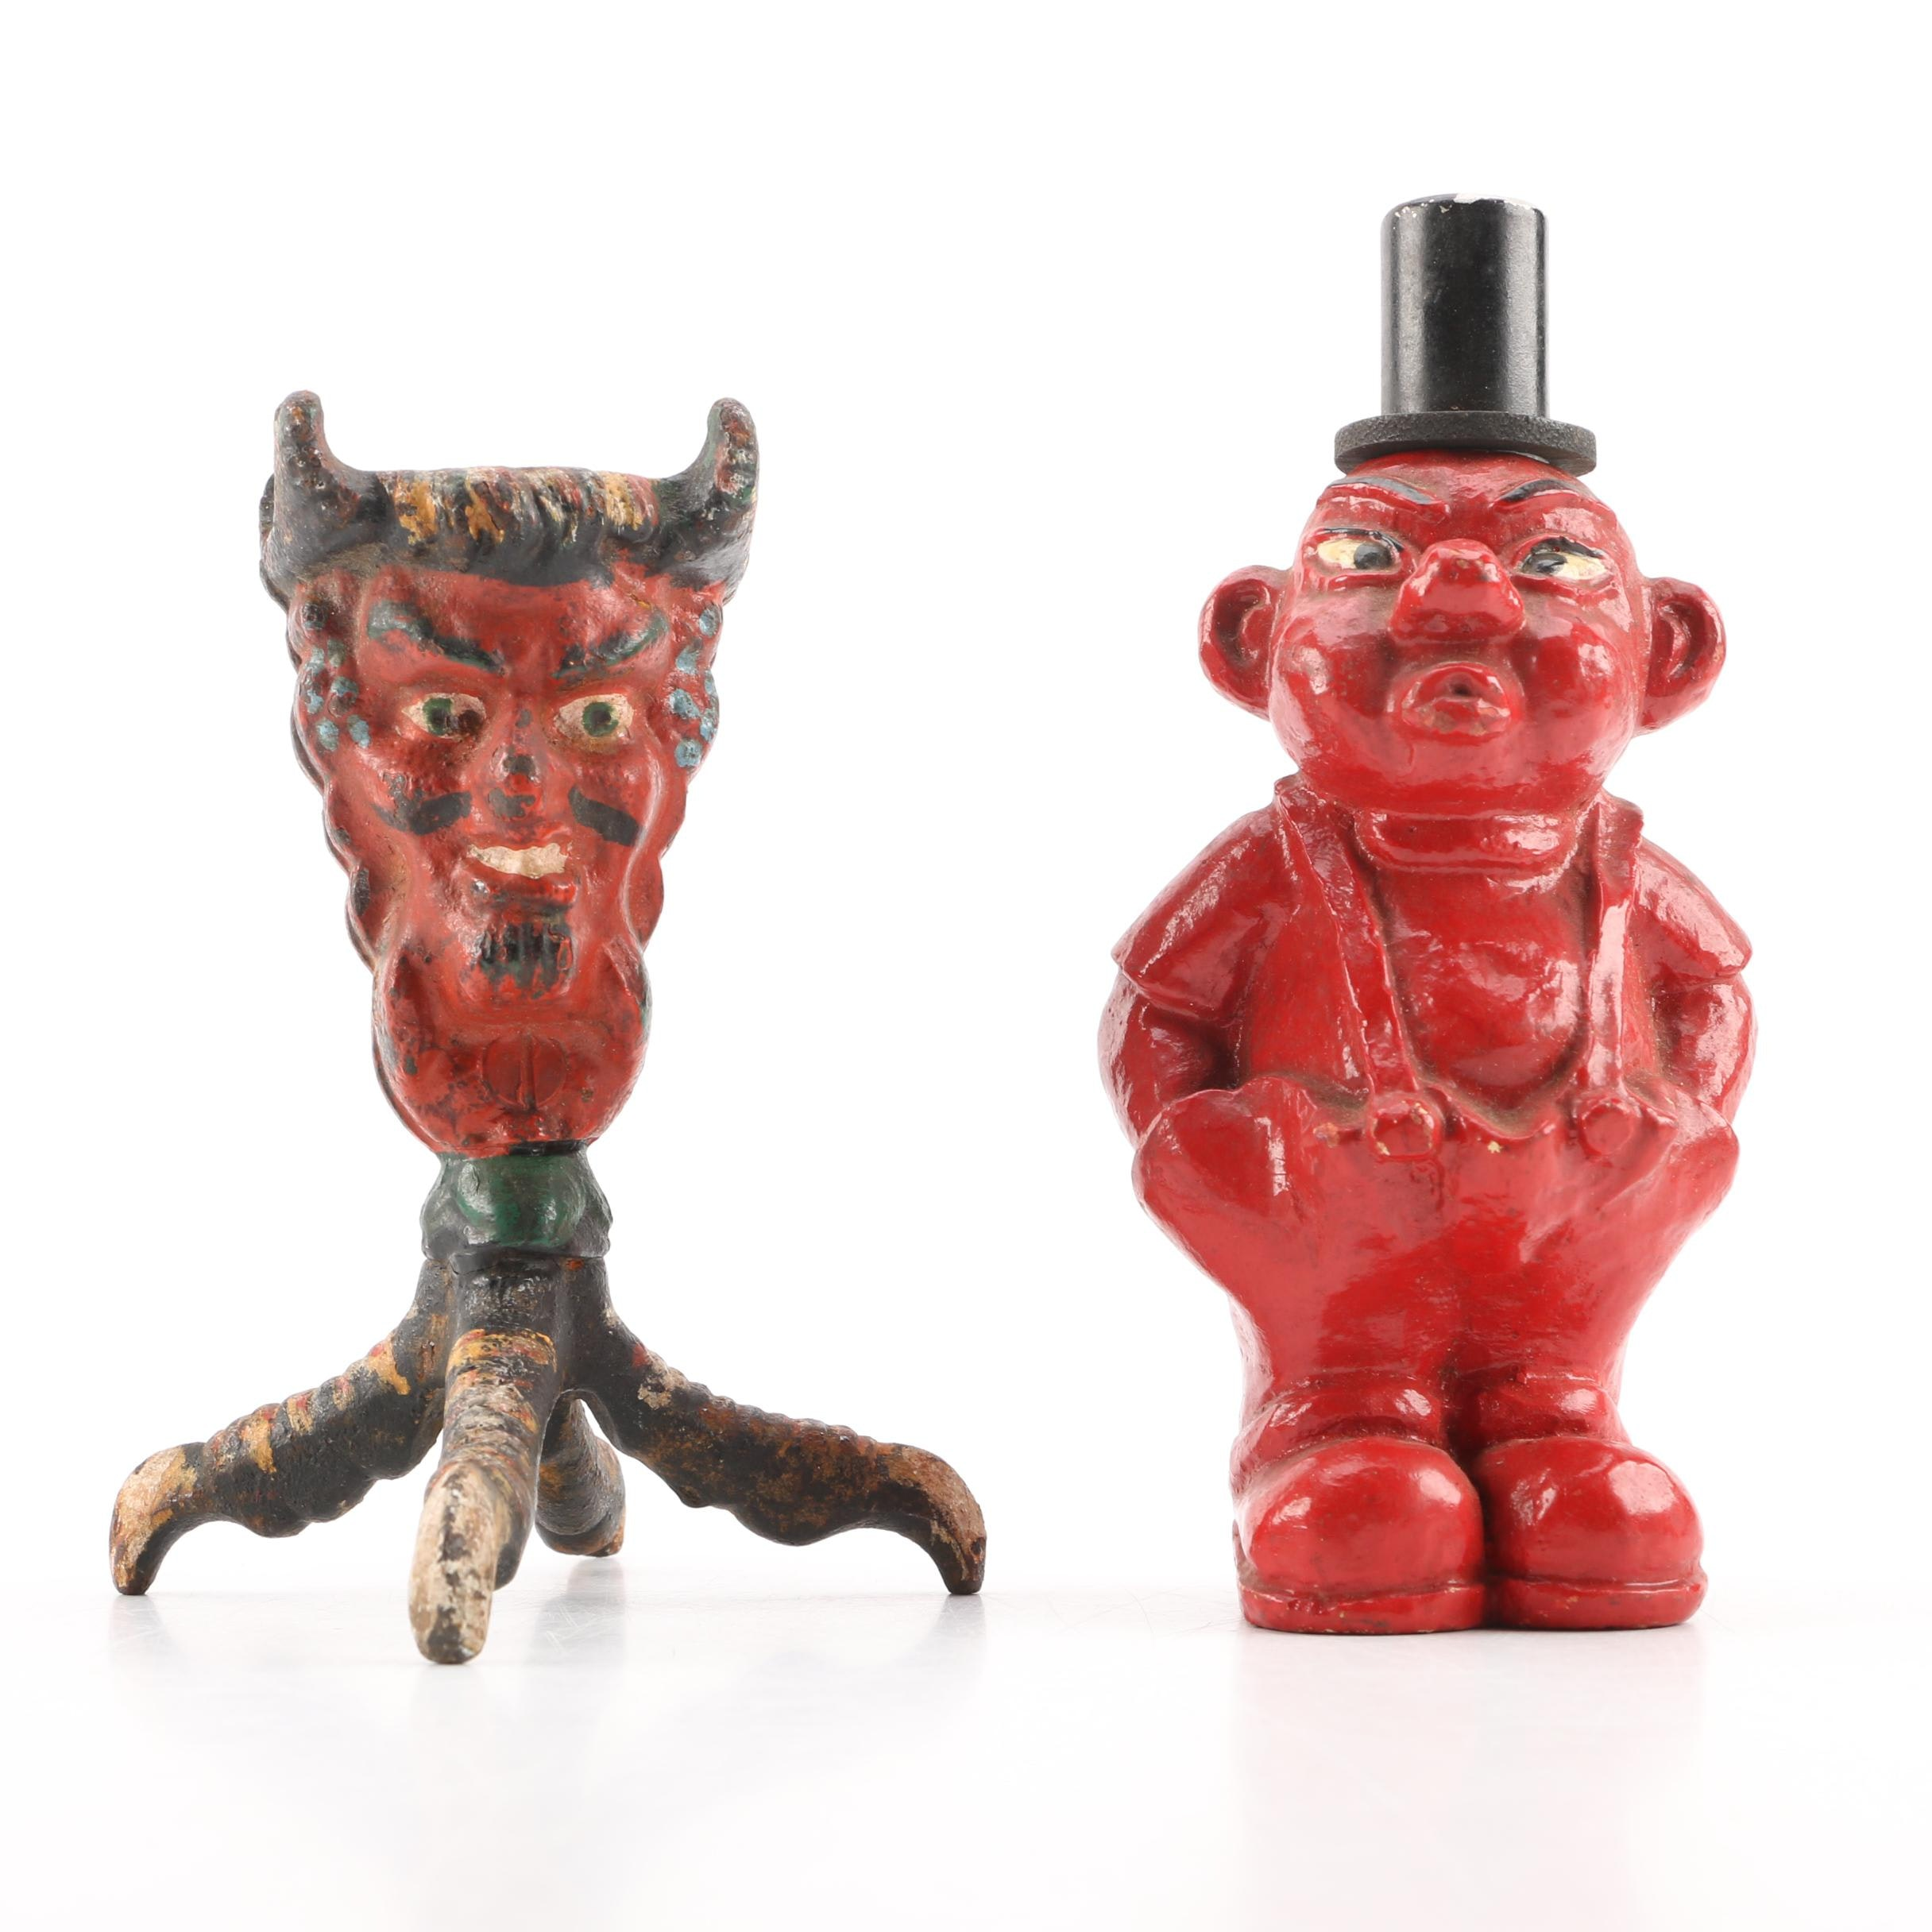 Figural Devil's Head Chicken Foot Match Holder with a Figural Lighter